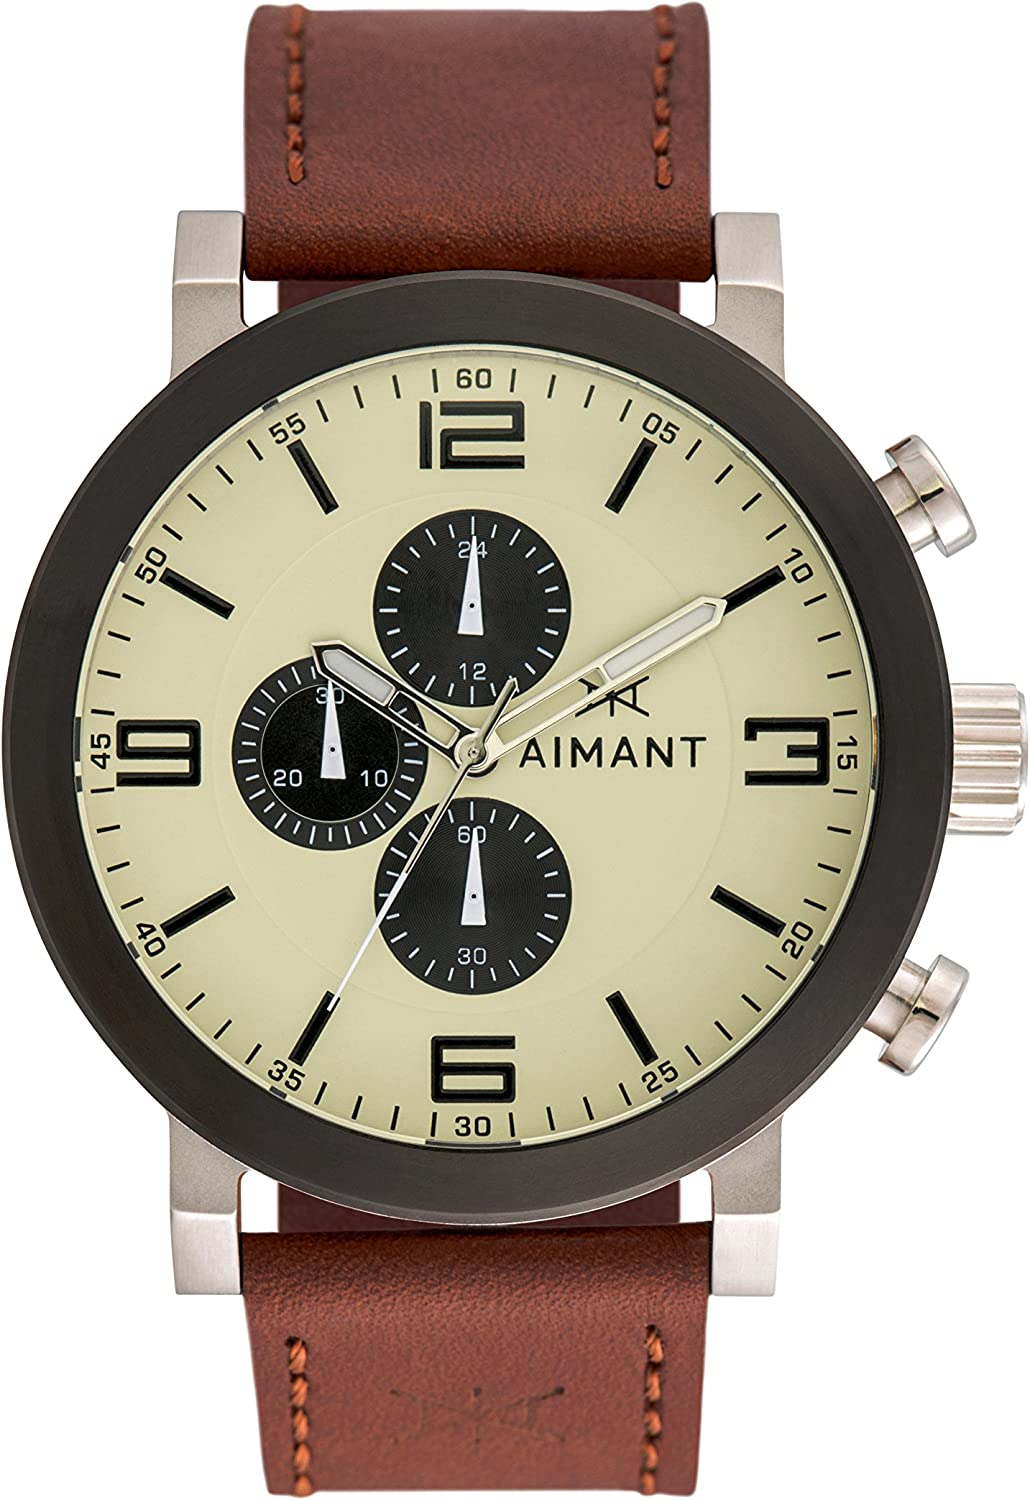 AIMANT Maui Cronograph Watches : 50 MM Men's Analog Watch : Leather